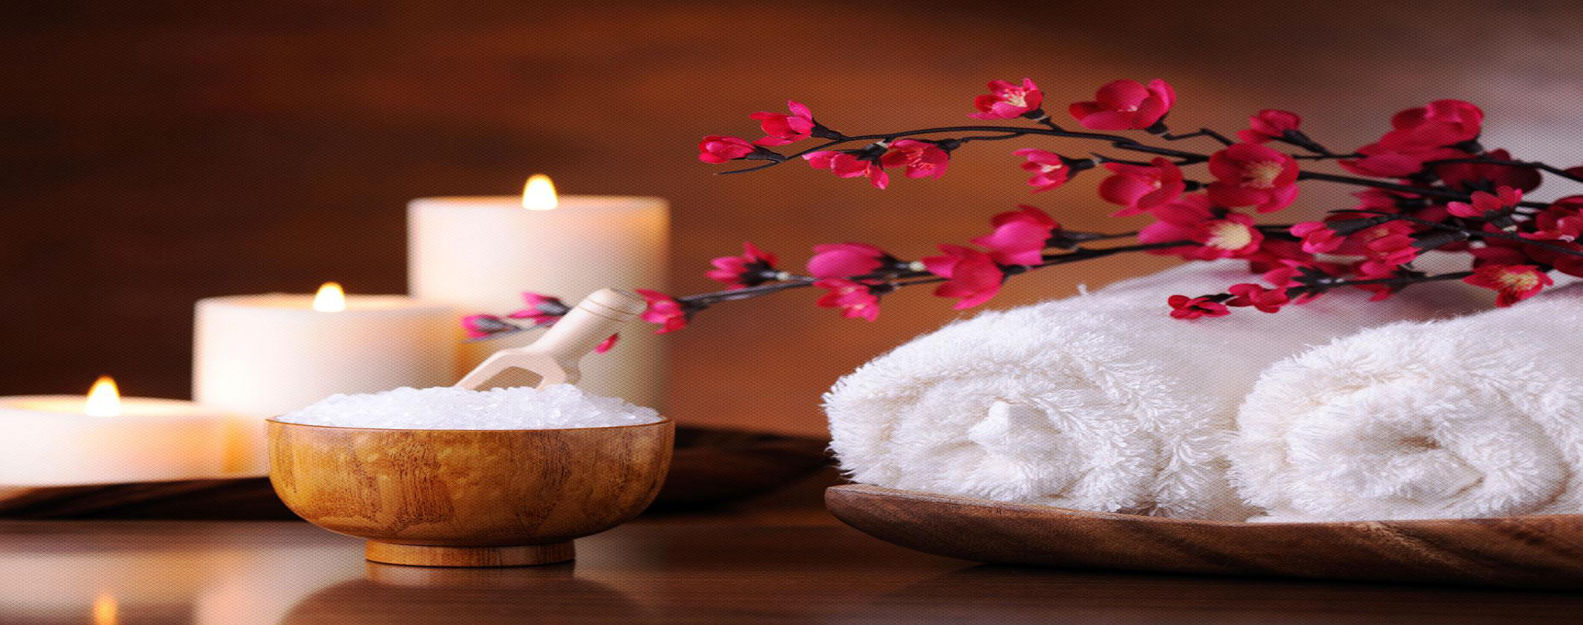 Full Body To Body Massage in Delhi, Gurgaon, Ncr By Female to Male